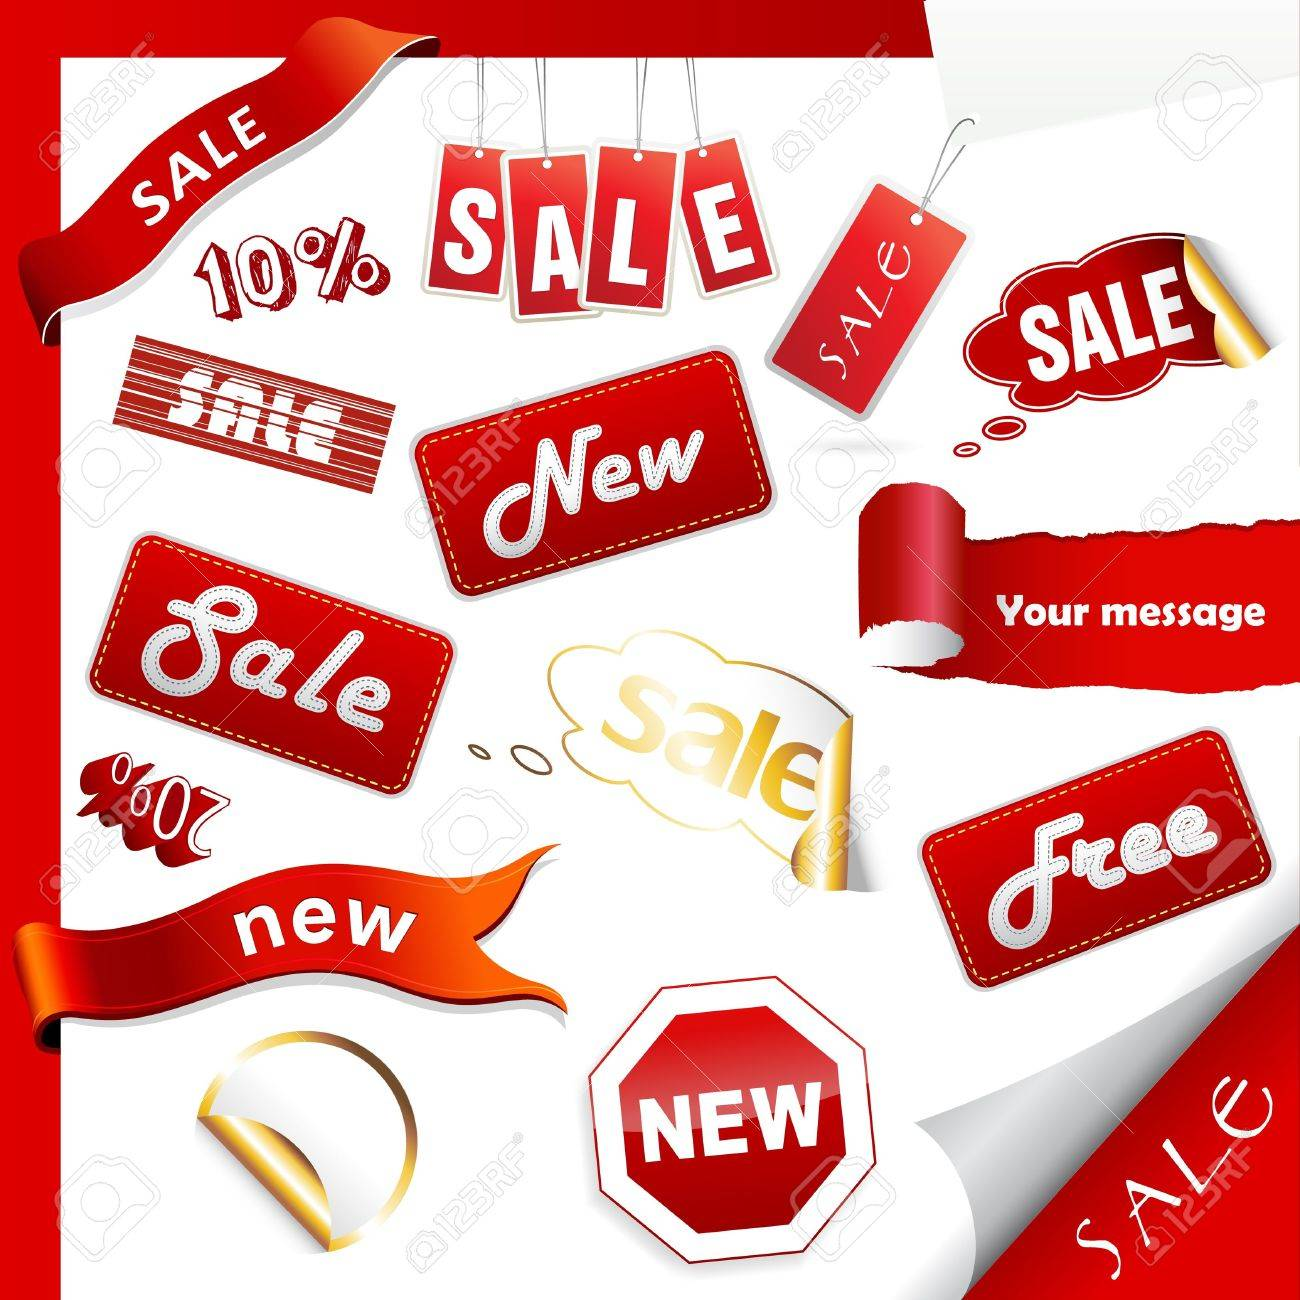 Set of sale icons, labels, stickers. - 17680087